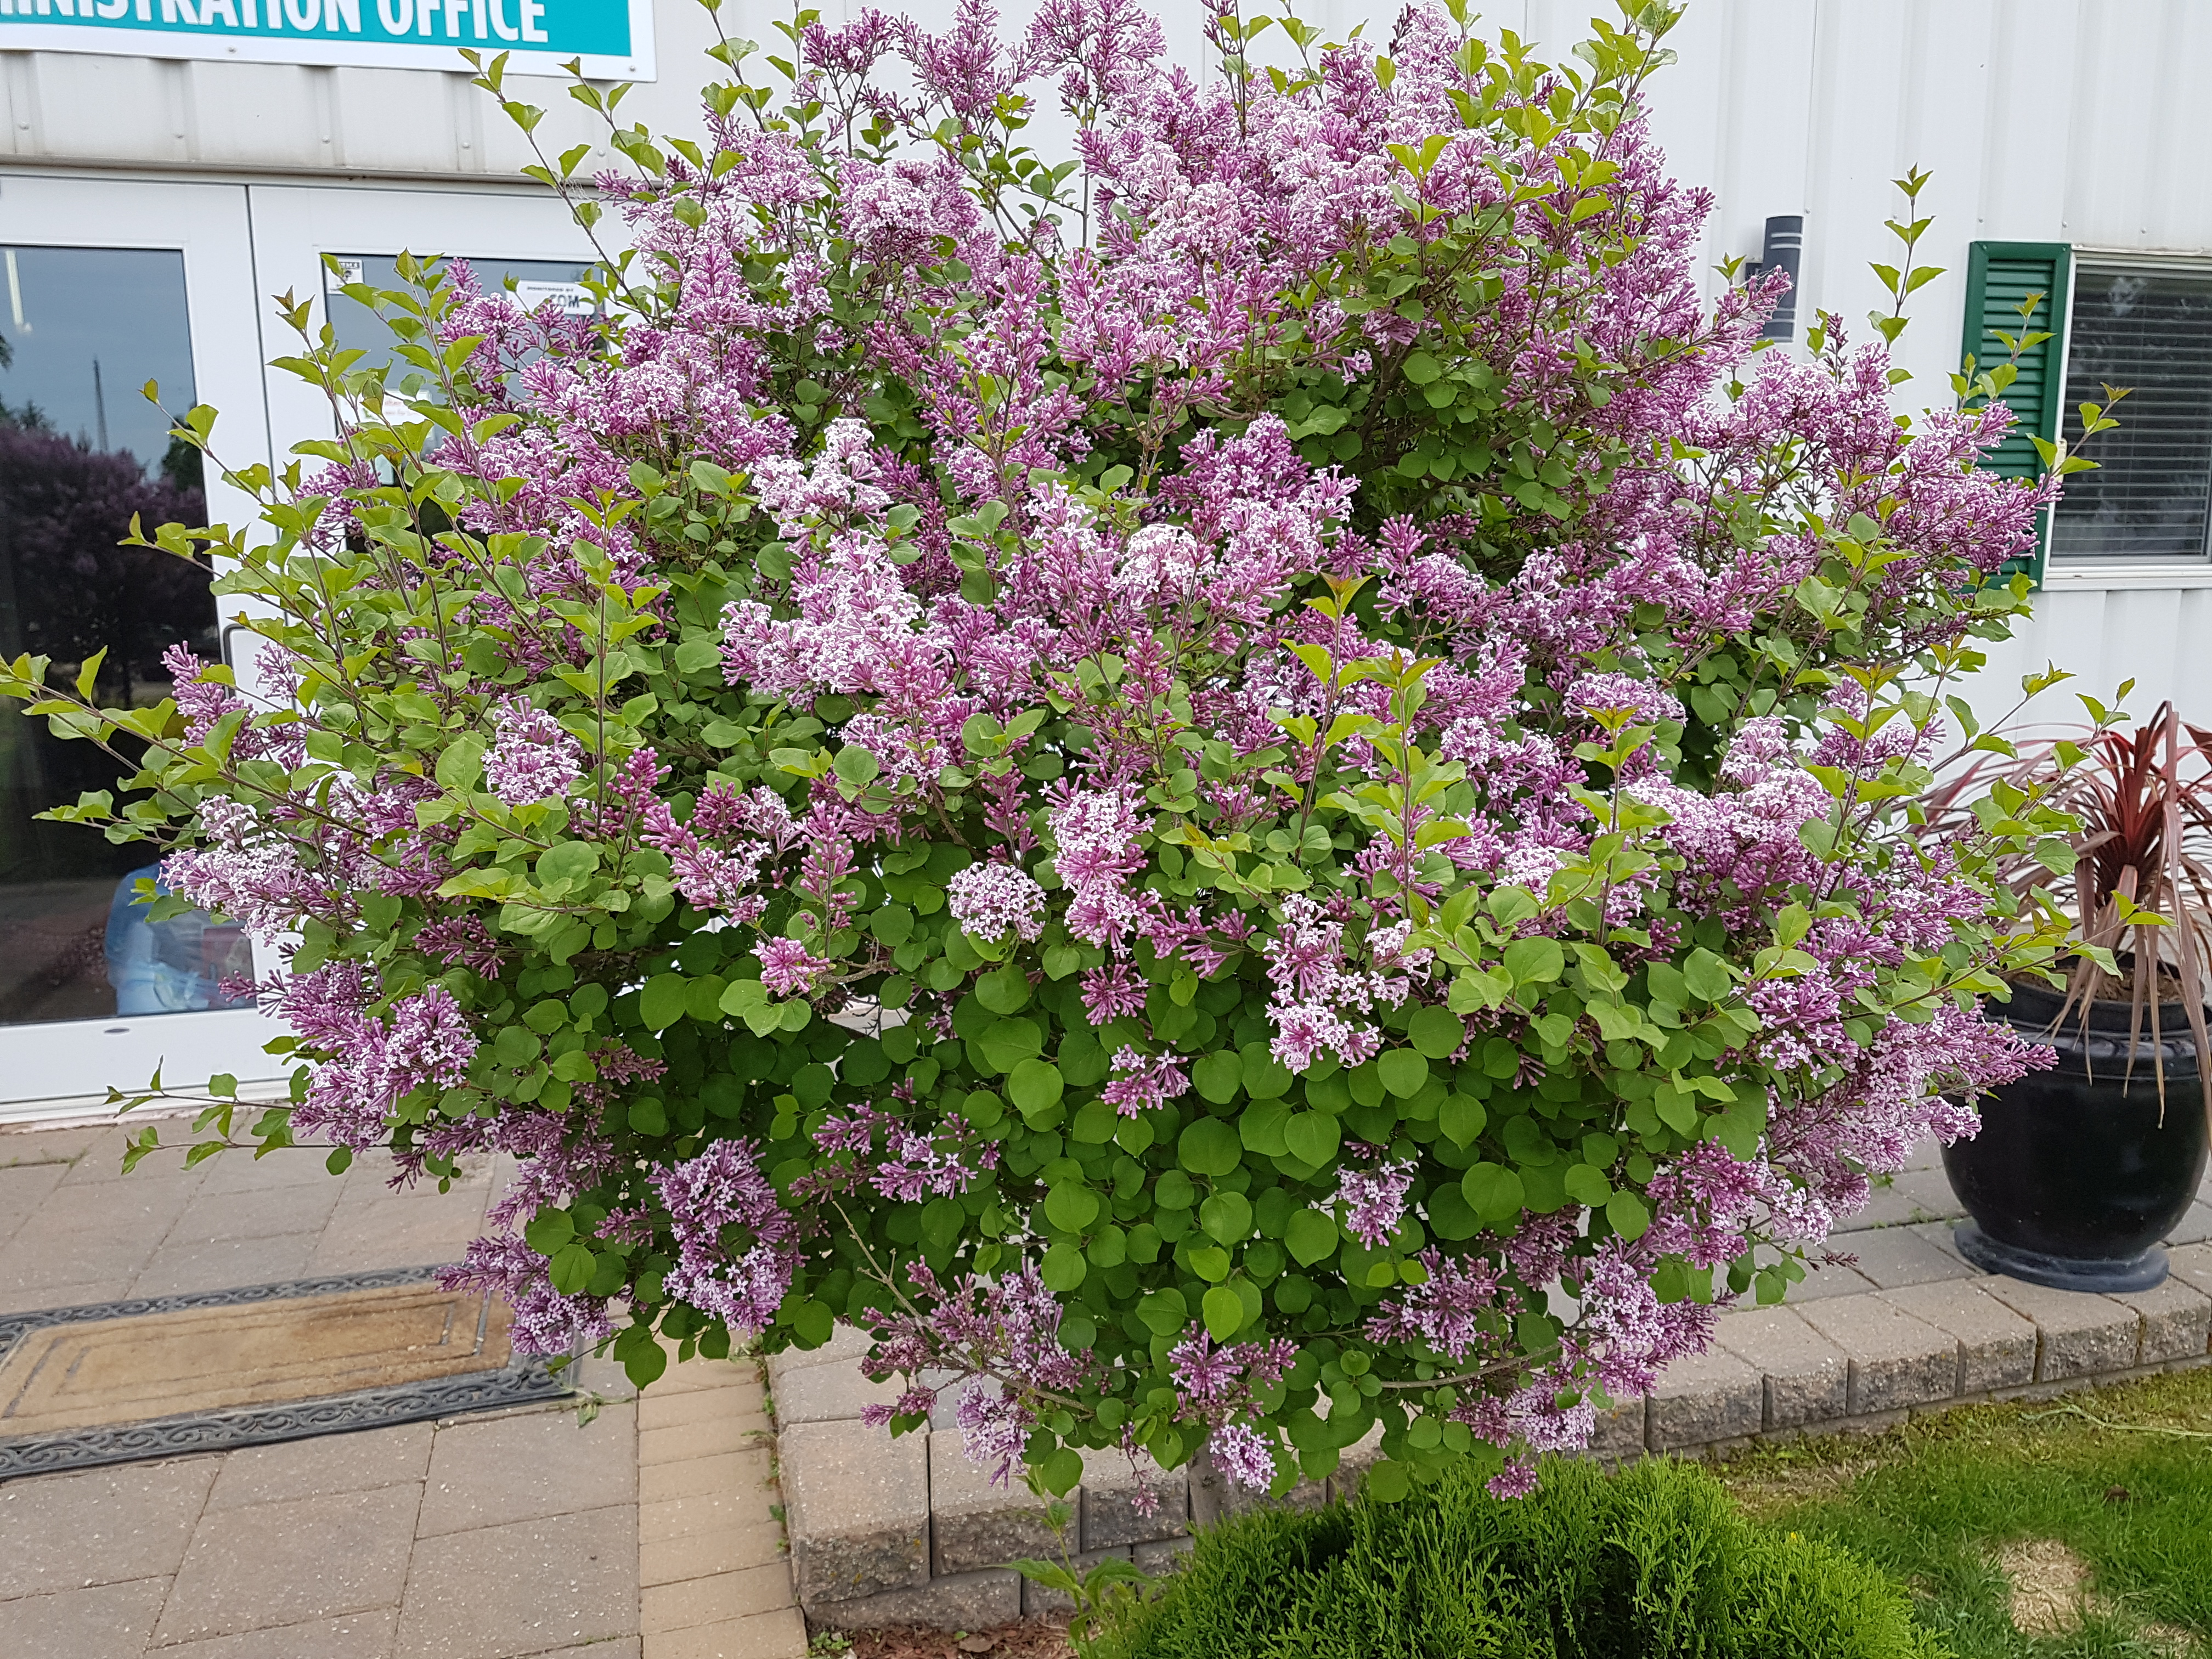 Cool Yearly Pruning Afterflowering Not Only Maintains Rounded But Helps To Ensure Thatstress Is Dwarf Korean Lilac Tg Chnne Tree Farm Shrubs Lilac Pink Flowers Cover Tree houzz-02 Dwarf Korean Lilac